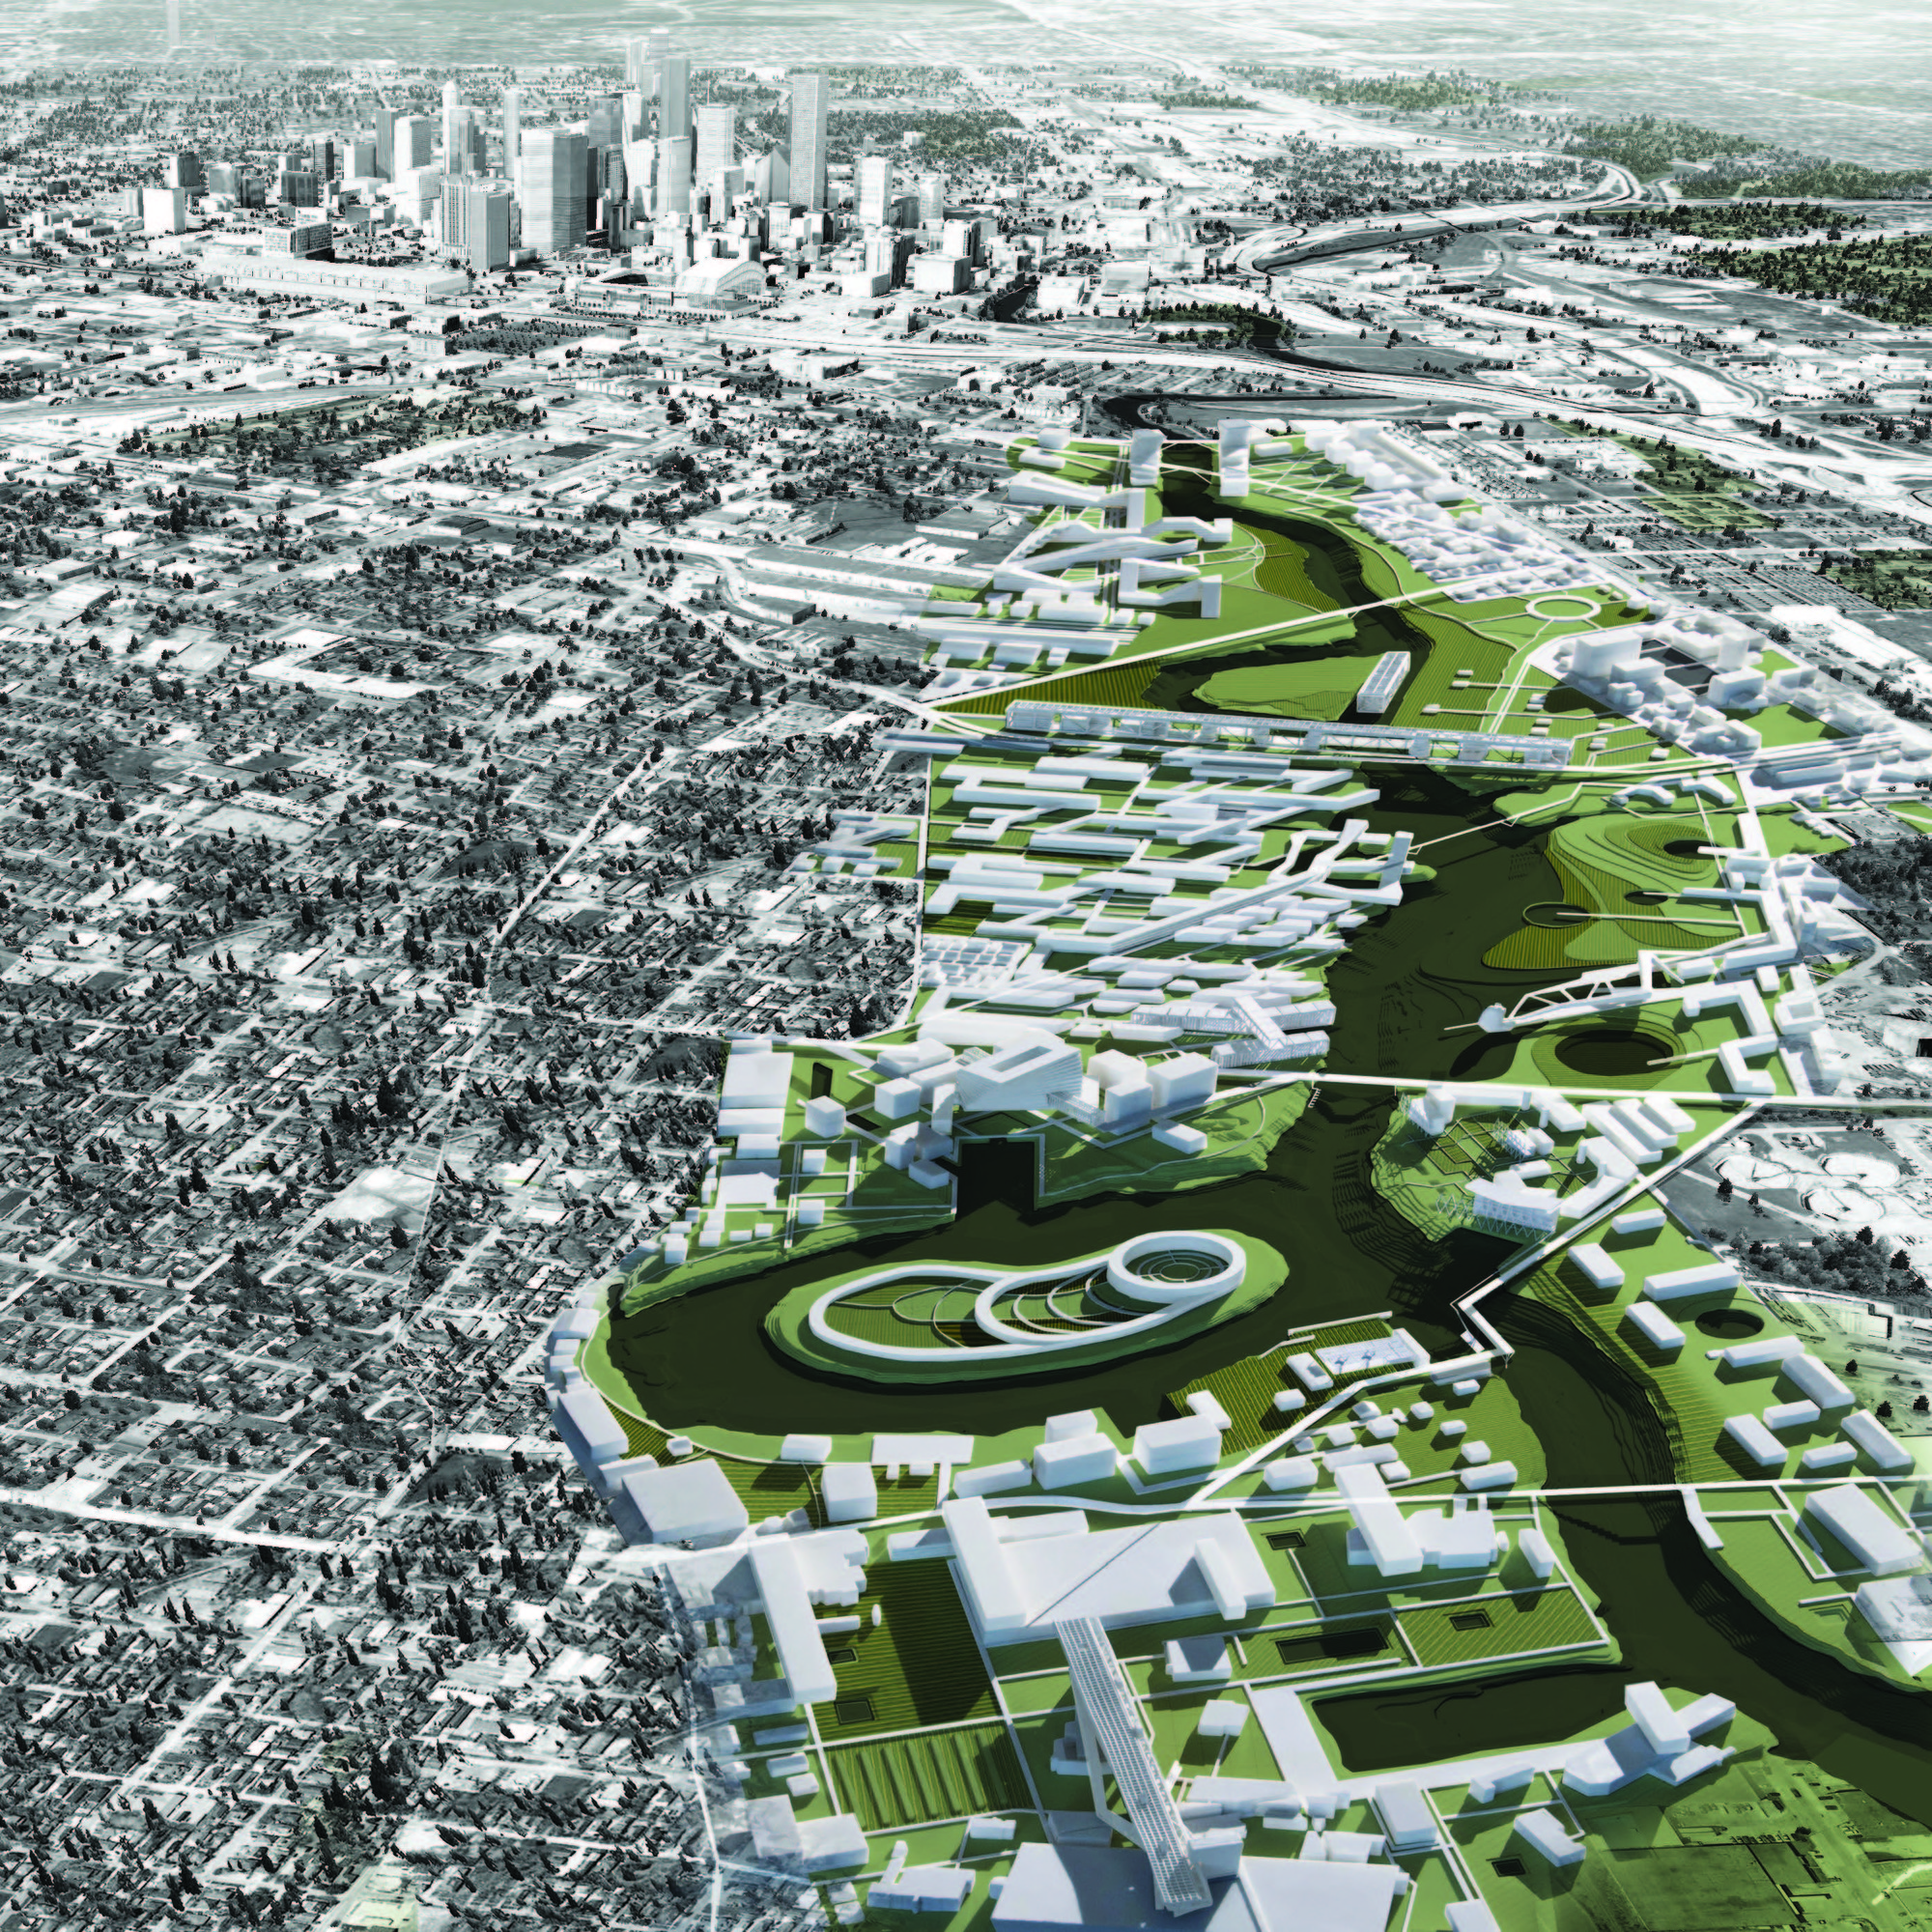 02 Mile Aerial Perspective - Downtown. Image Courtesy of UH College of Architecture